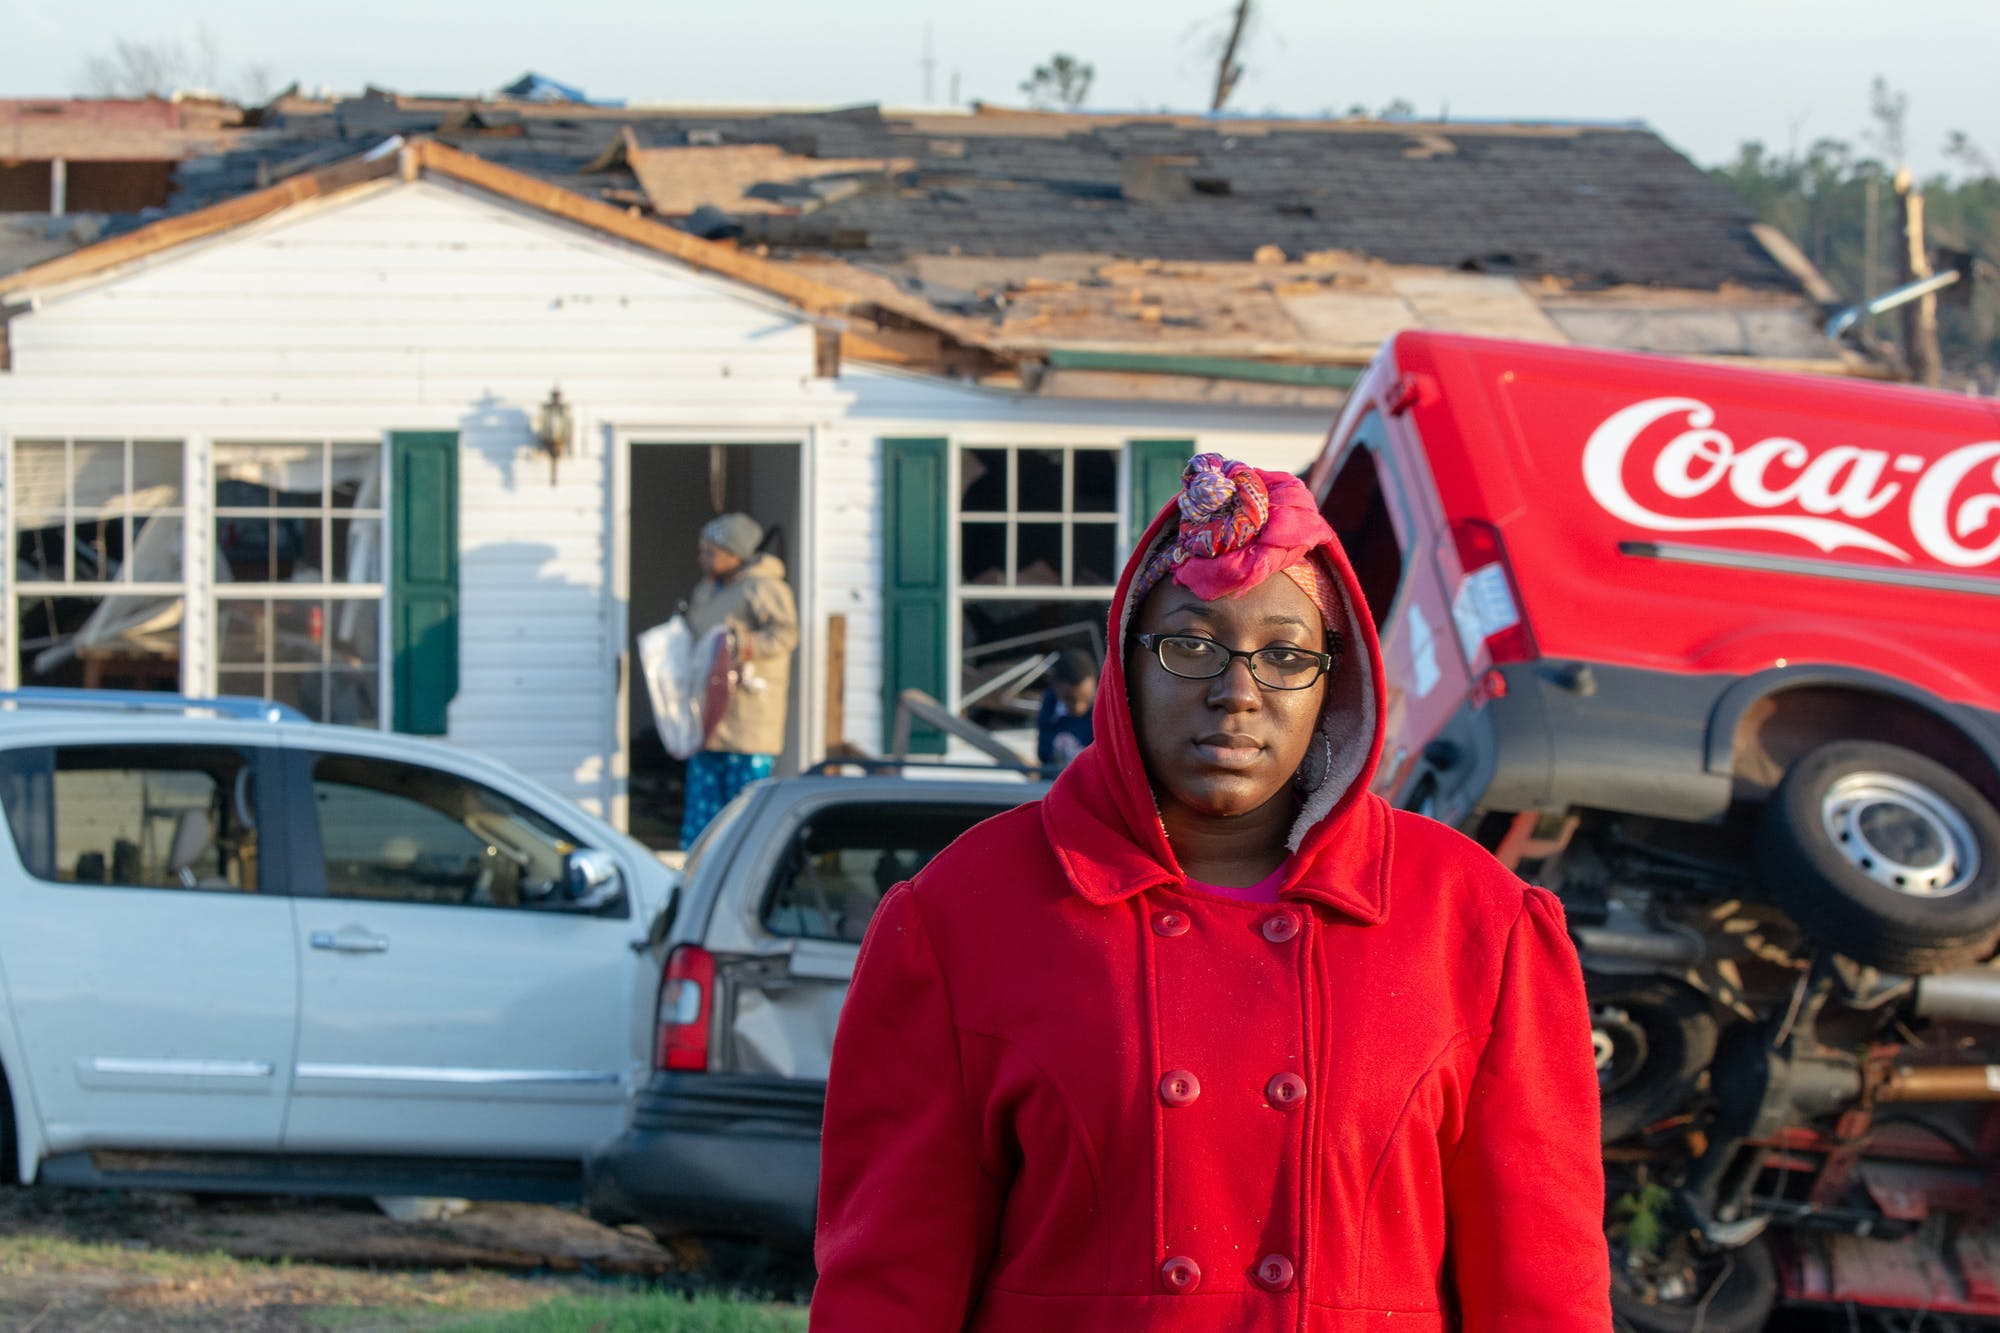 This woman called her family to warn of an approaching tornado. It might have saved their lives.